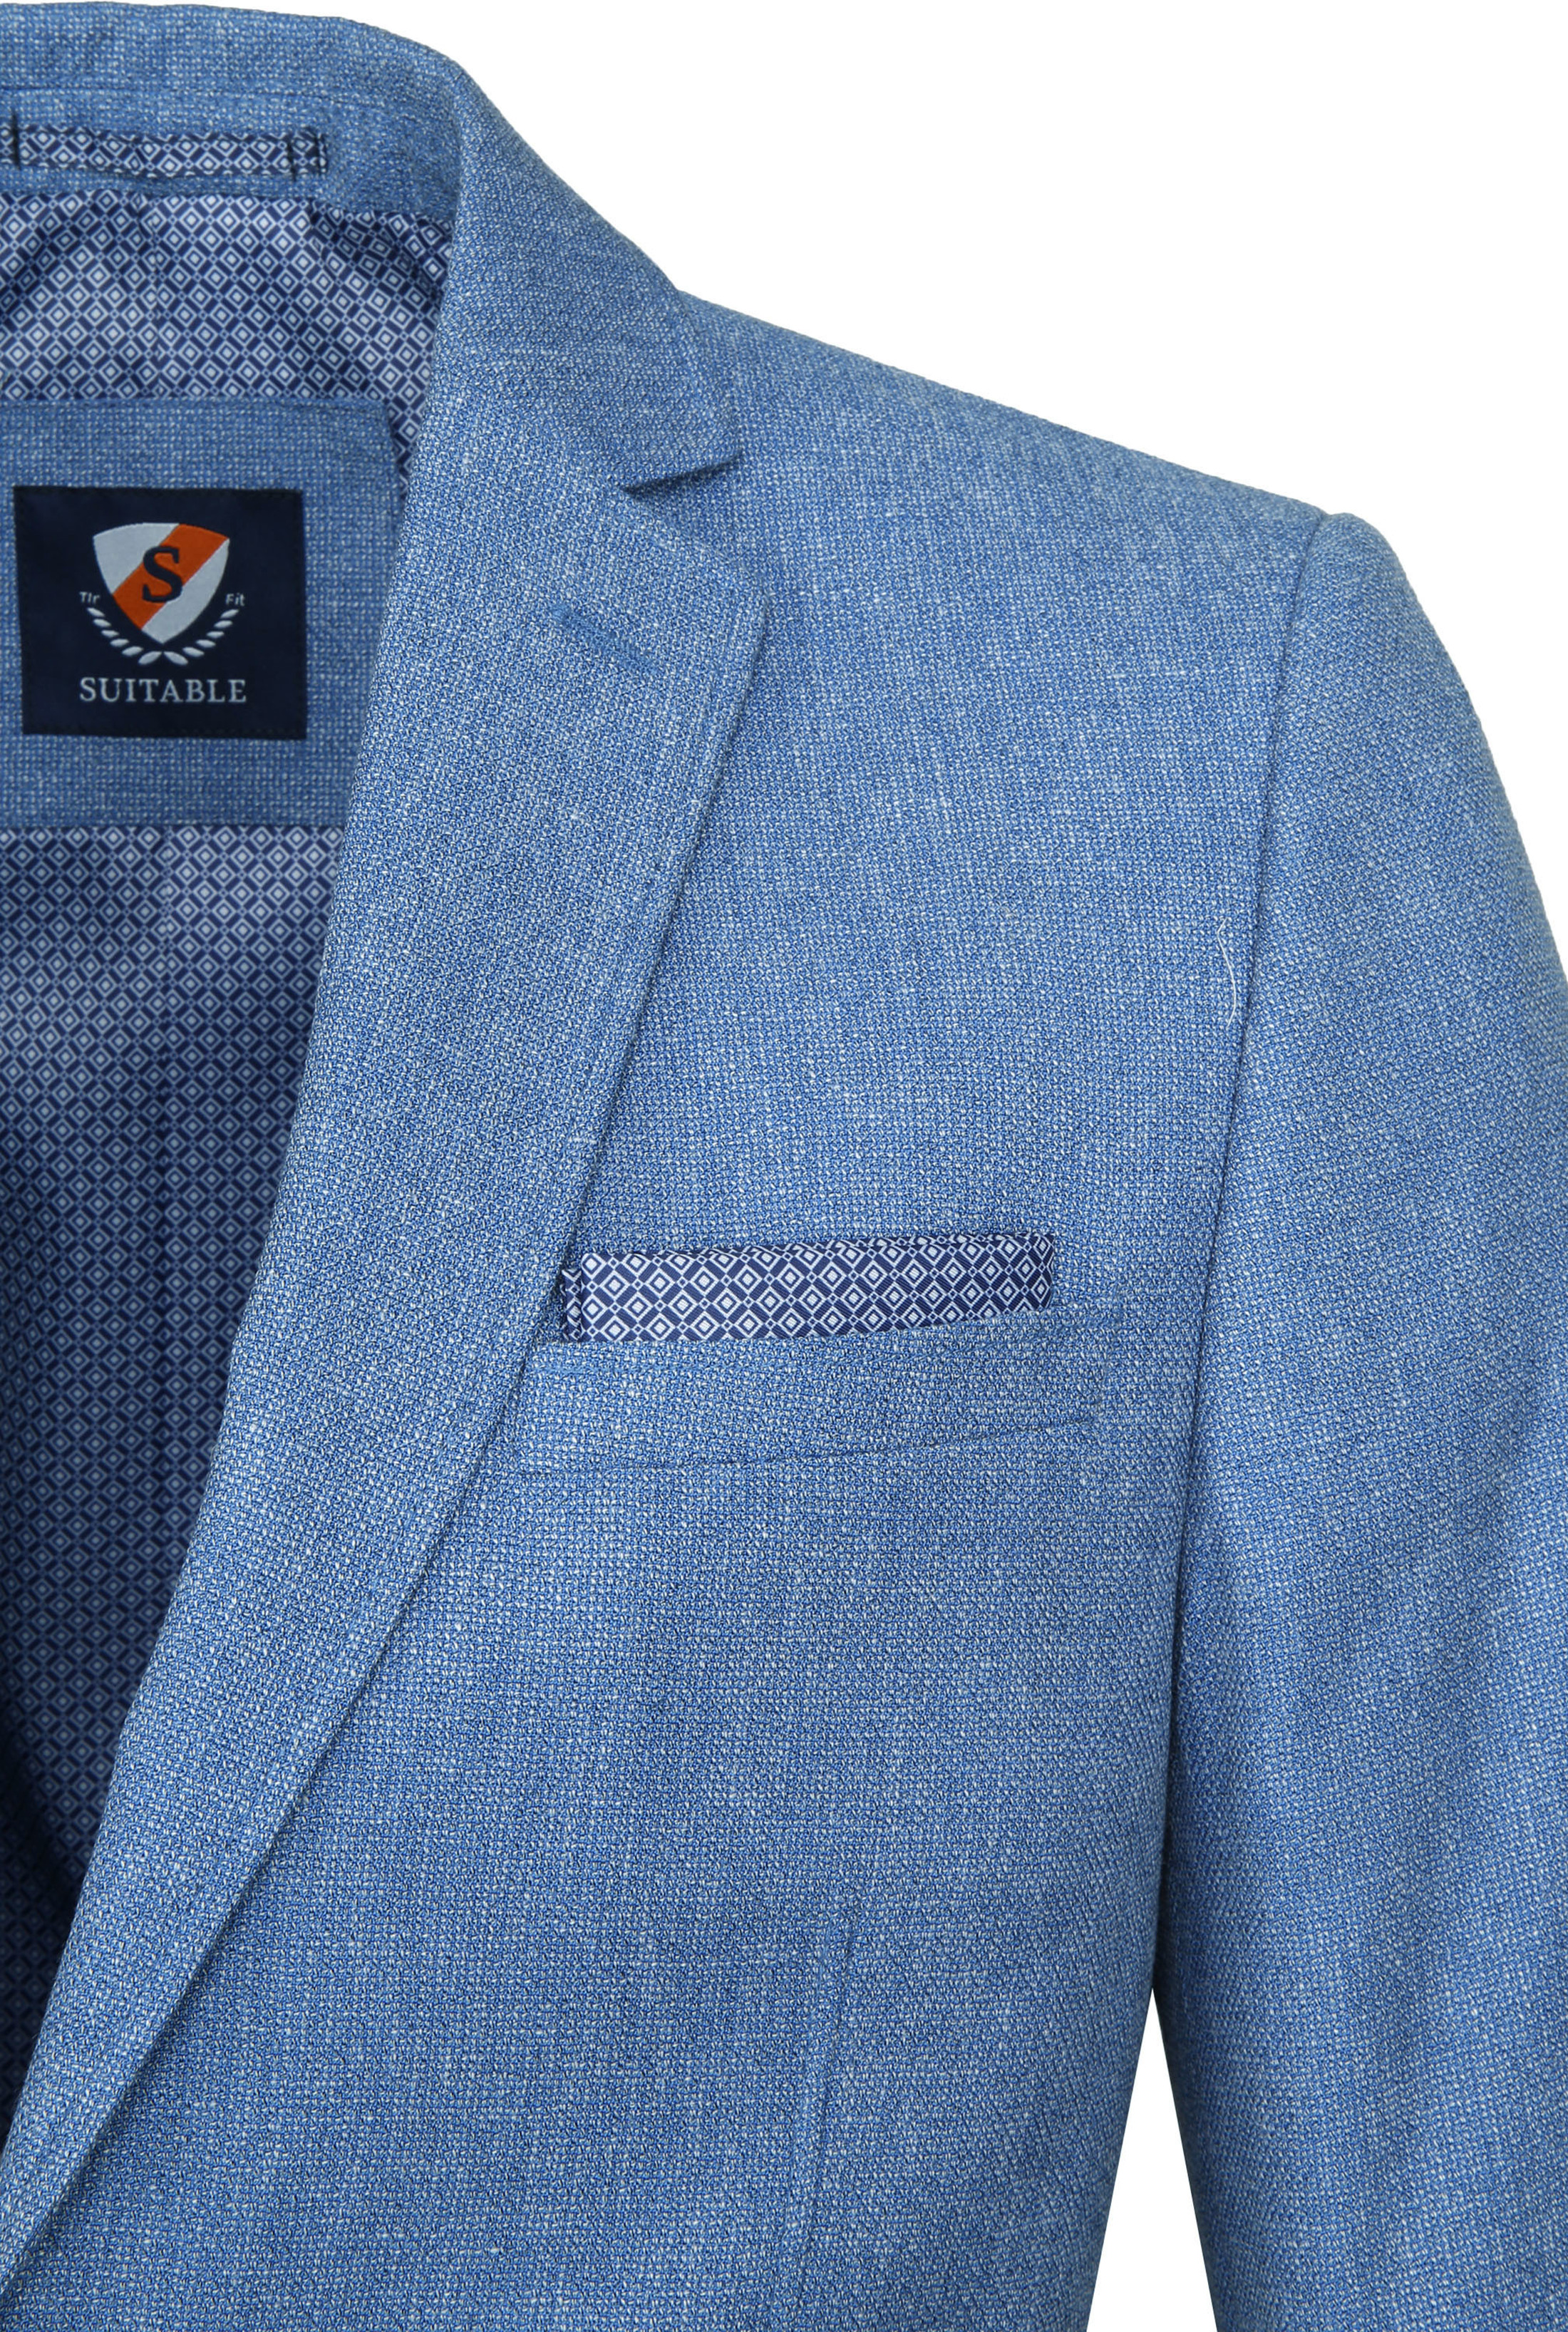 Suitable Blazer Tolo Light Blue foto 1